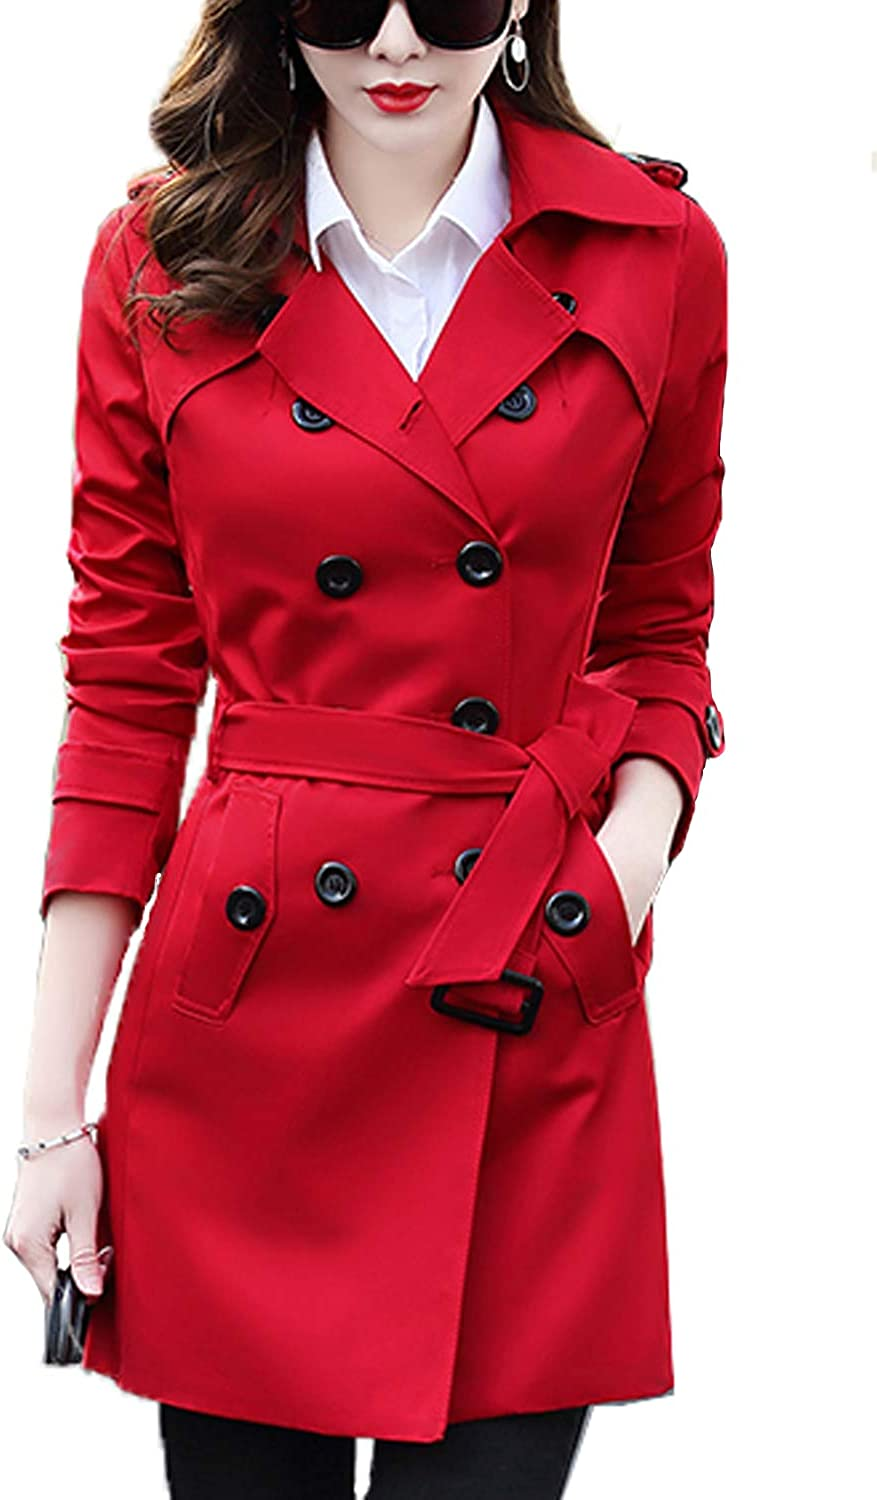 FARVALUE Women's Double Breasted Trench Coat Classic Belted Lapel Overcoat